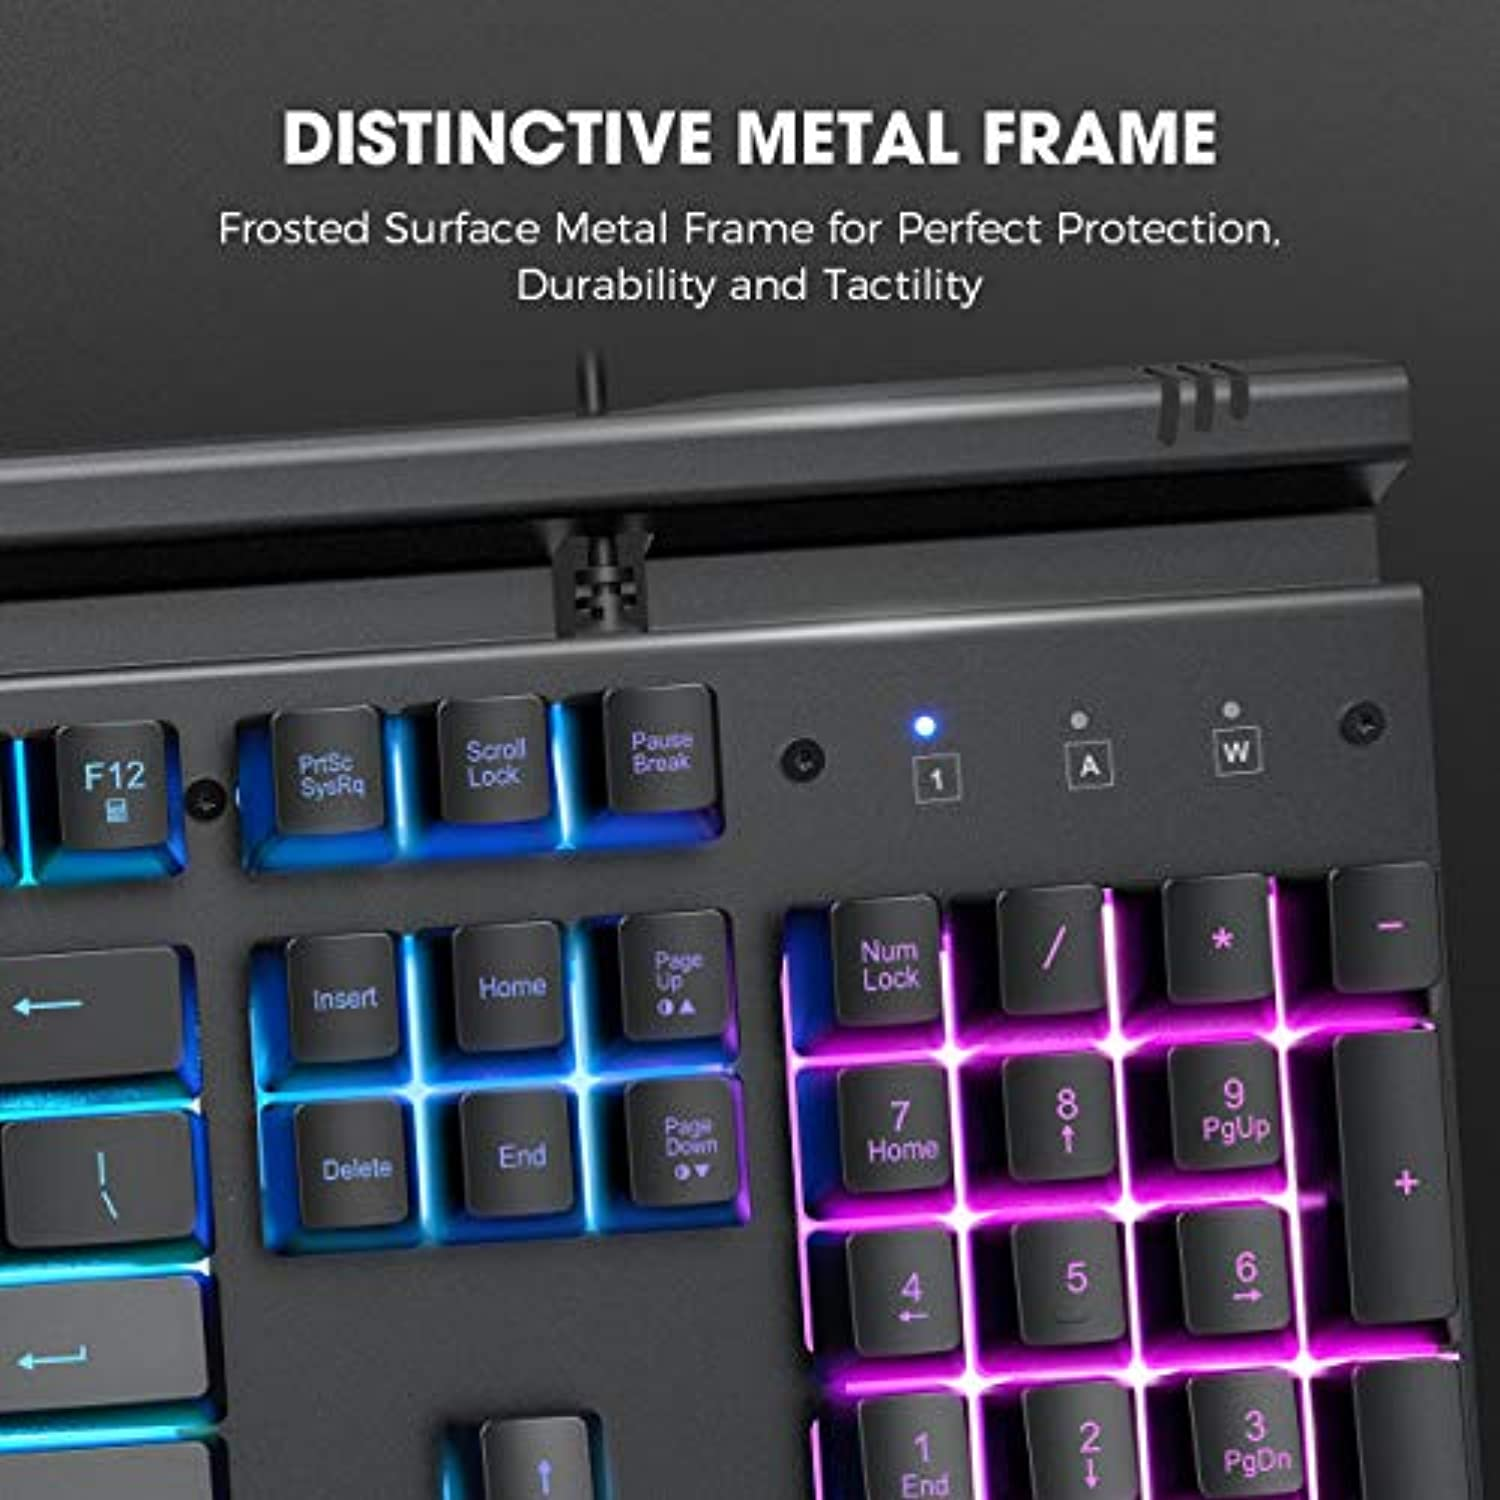 Classier: Buy VicTsing VictSing RGB Gaming Keyboard Metallic, RGB Backlit Gaming Keyboard, Metal-Panel Wired Keyboard with Mobile Phone Holder, Quiet Click Computer Keyboard with Ergonomic Wrist Rest for PC Gamers, Black